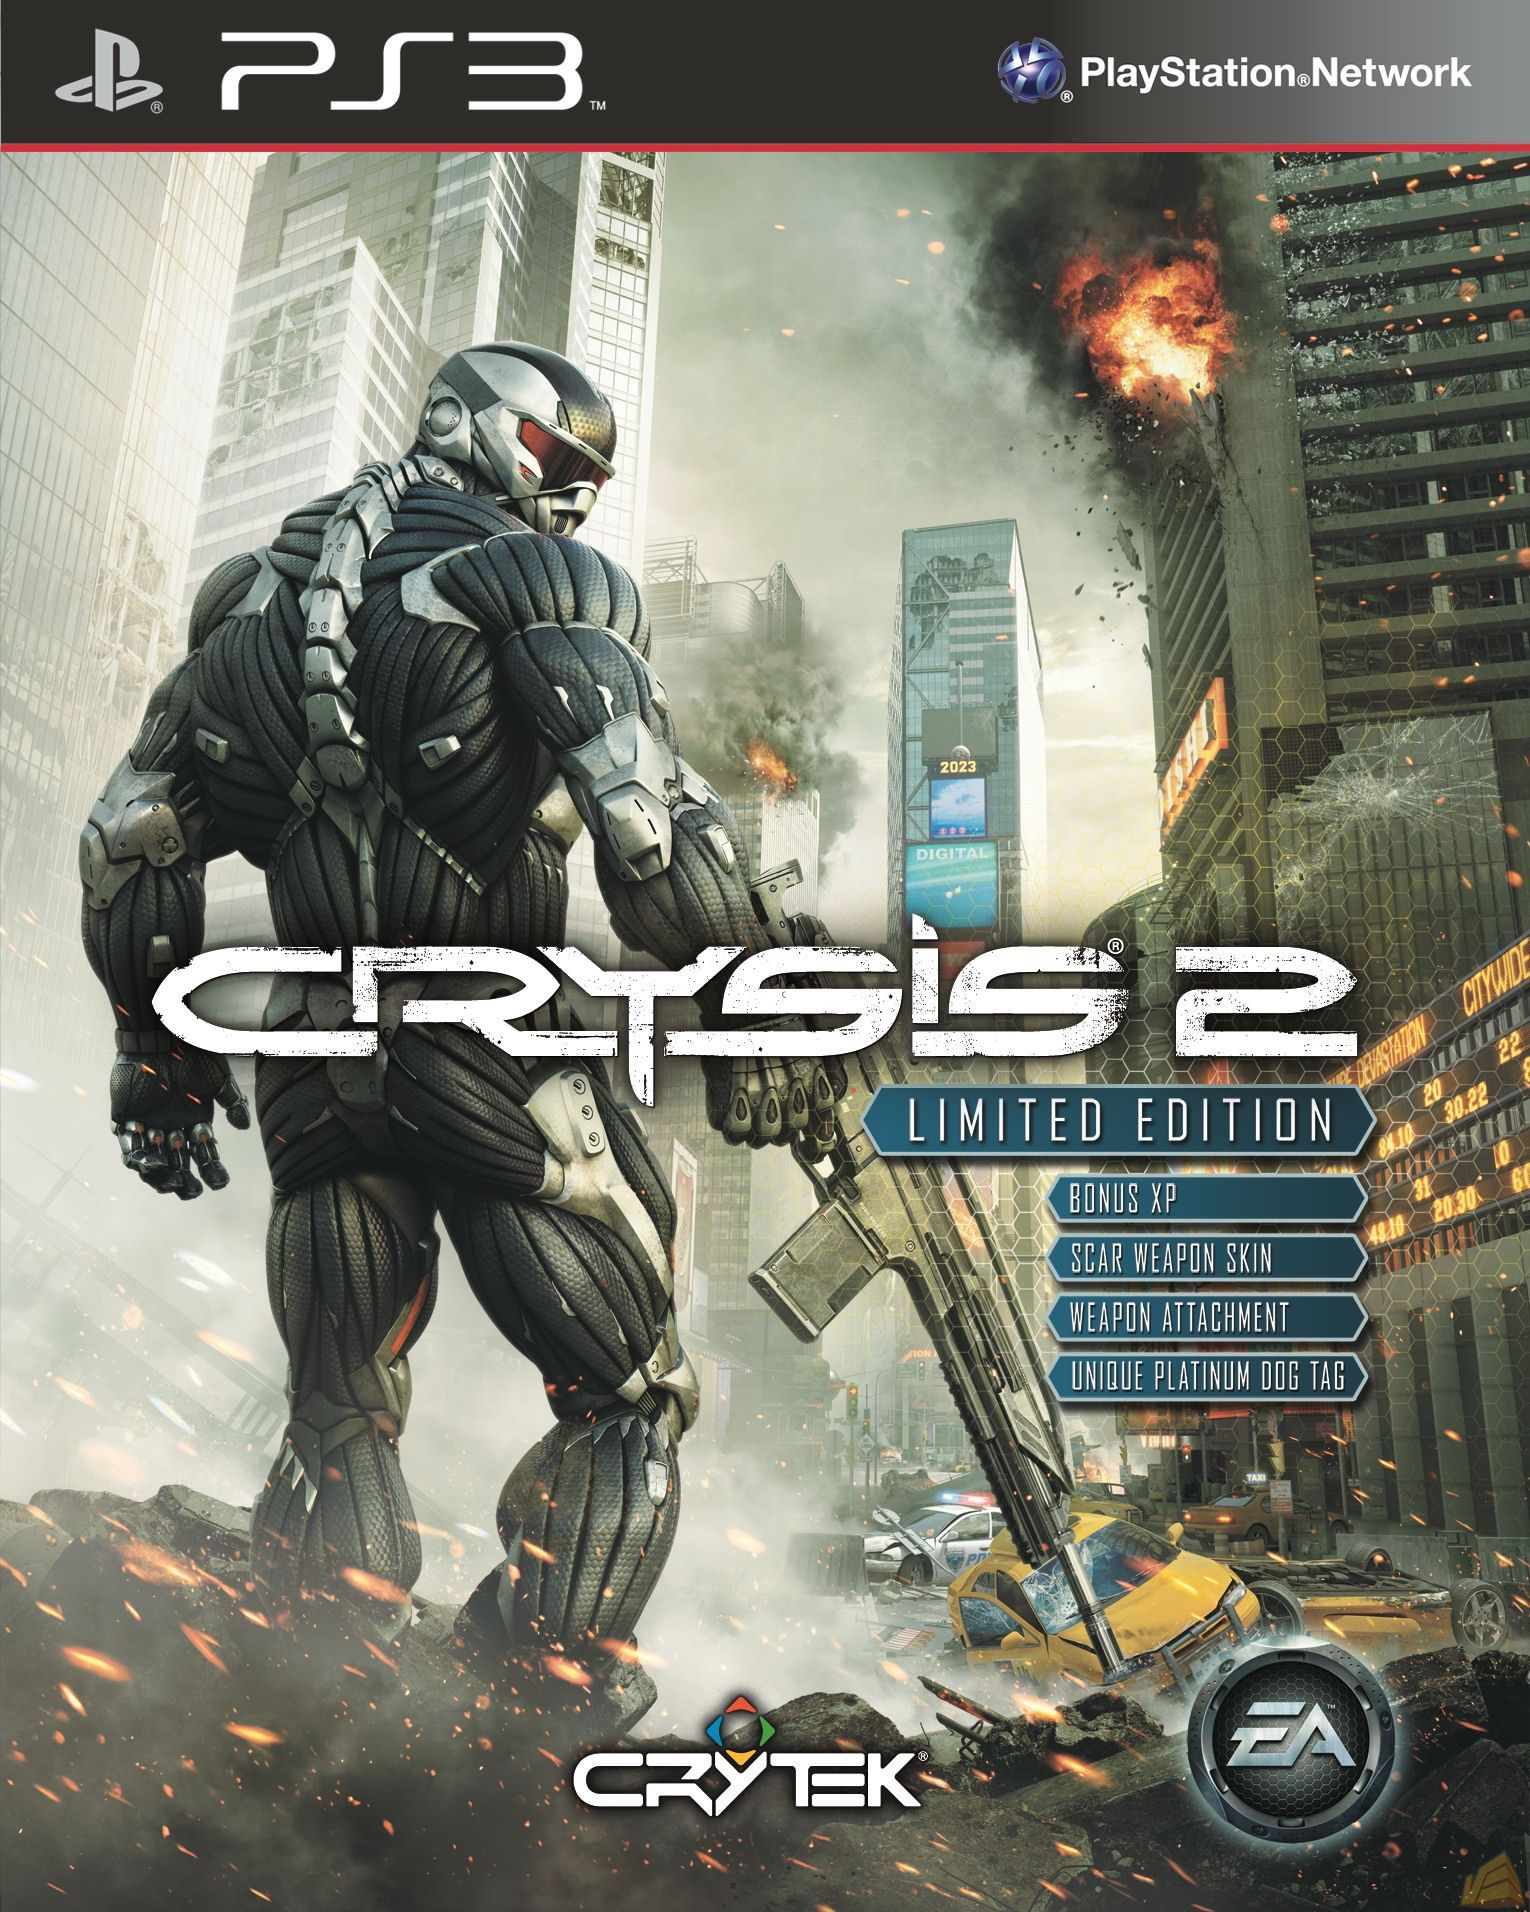 crysis-2-walkthrough-artwork.jpg